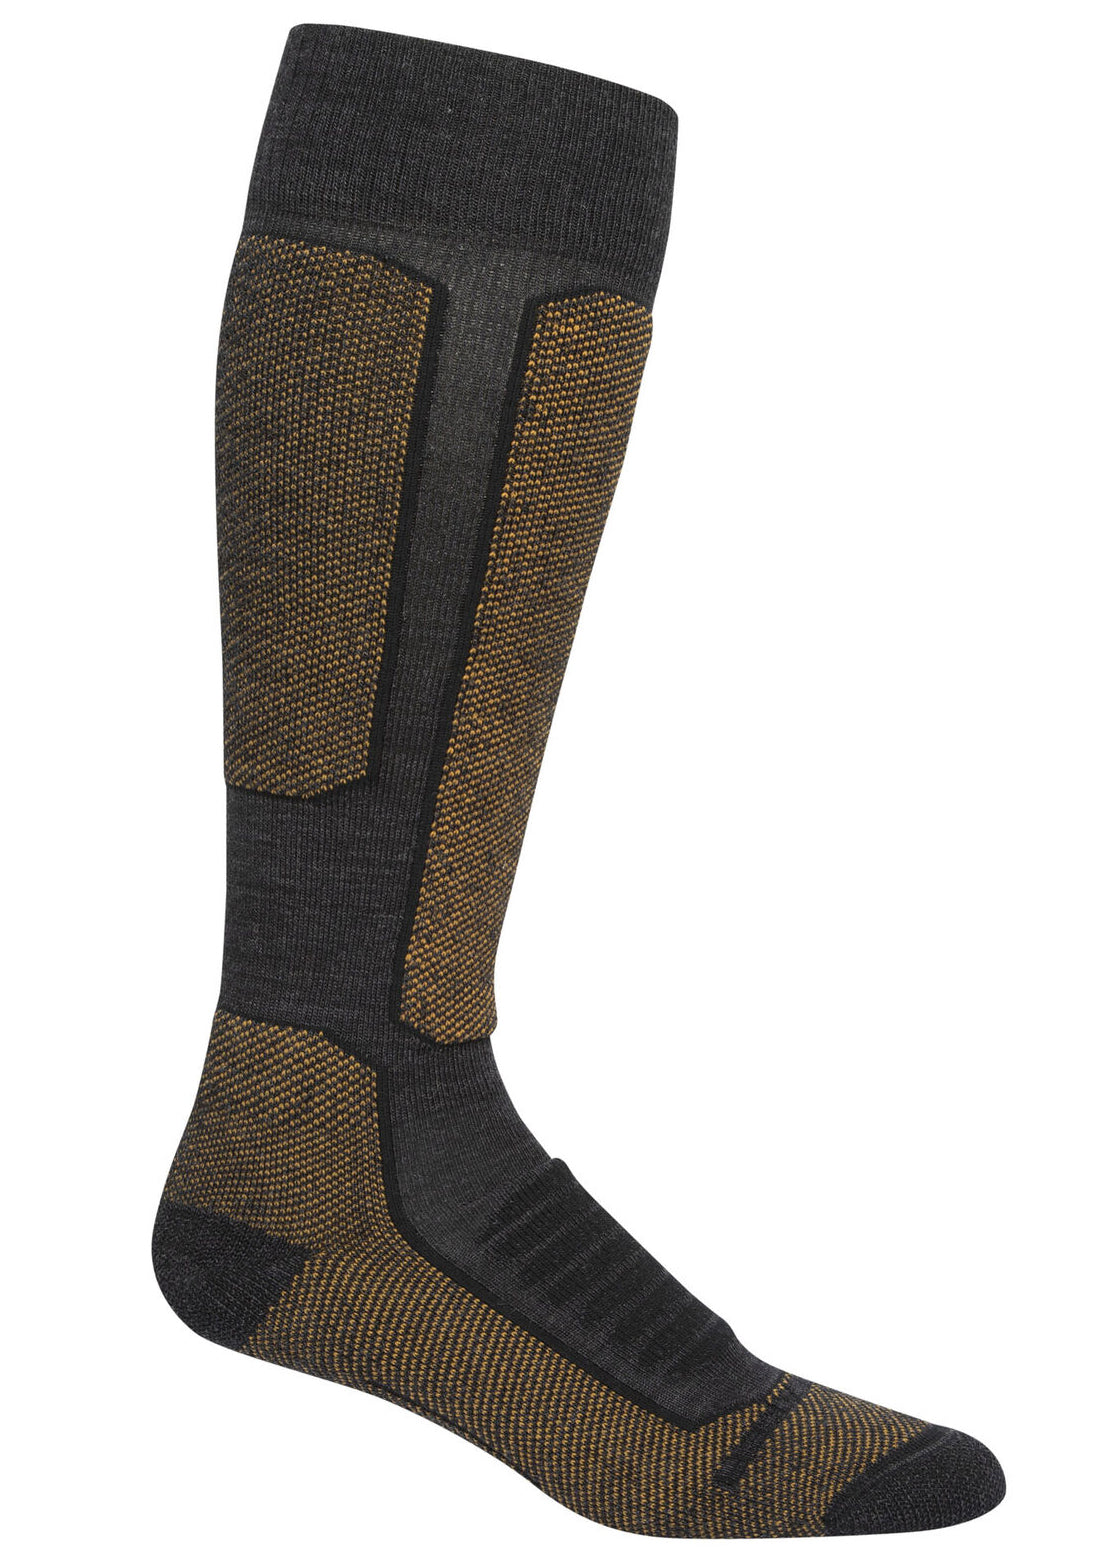 Icebreaker Men's Merino Ski+ Medium Over The Calf Socks Jet Heather/Cavern